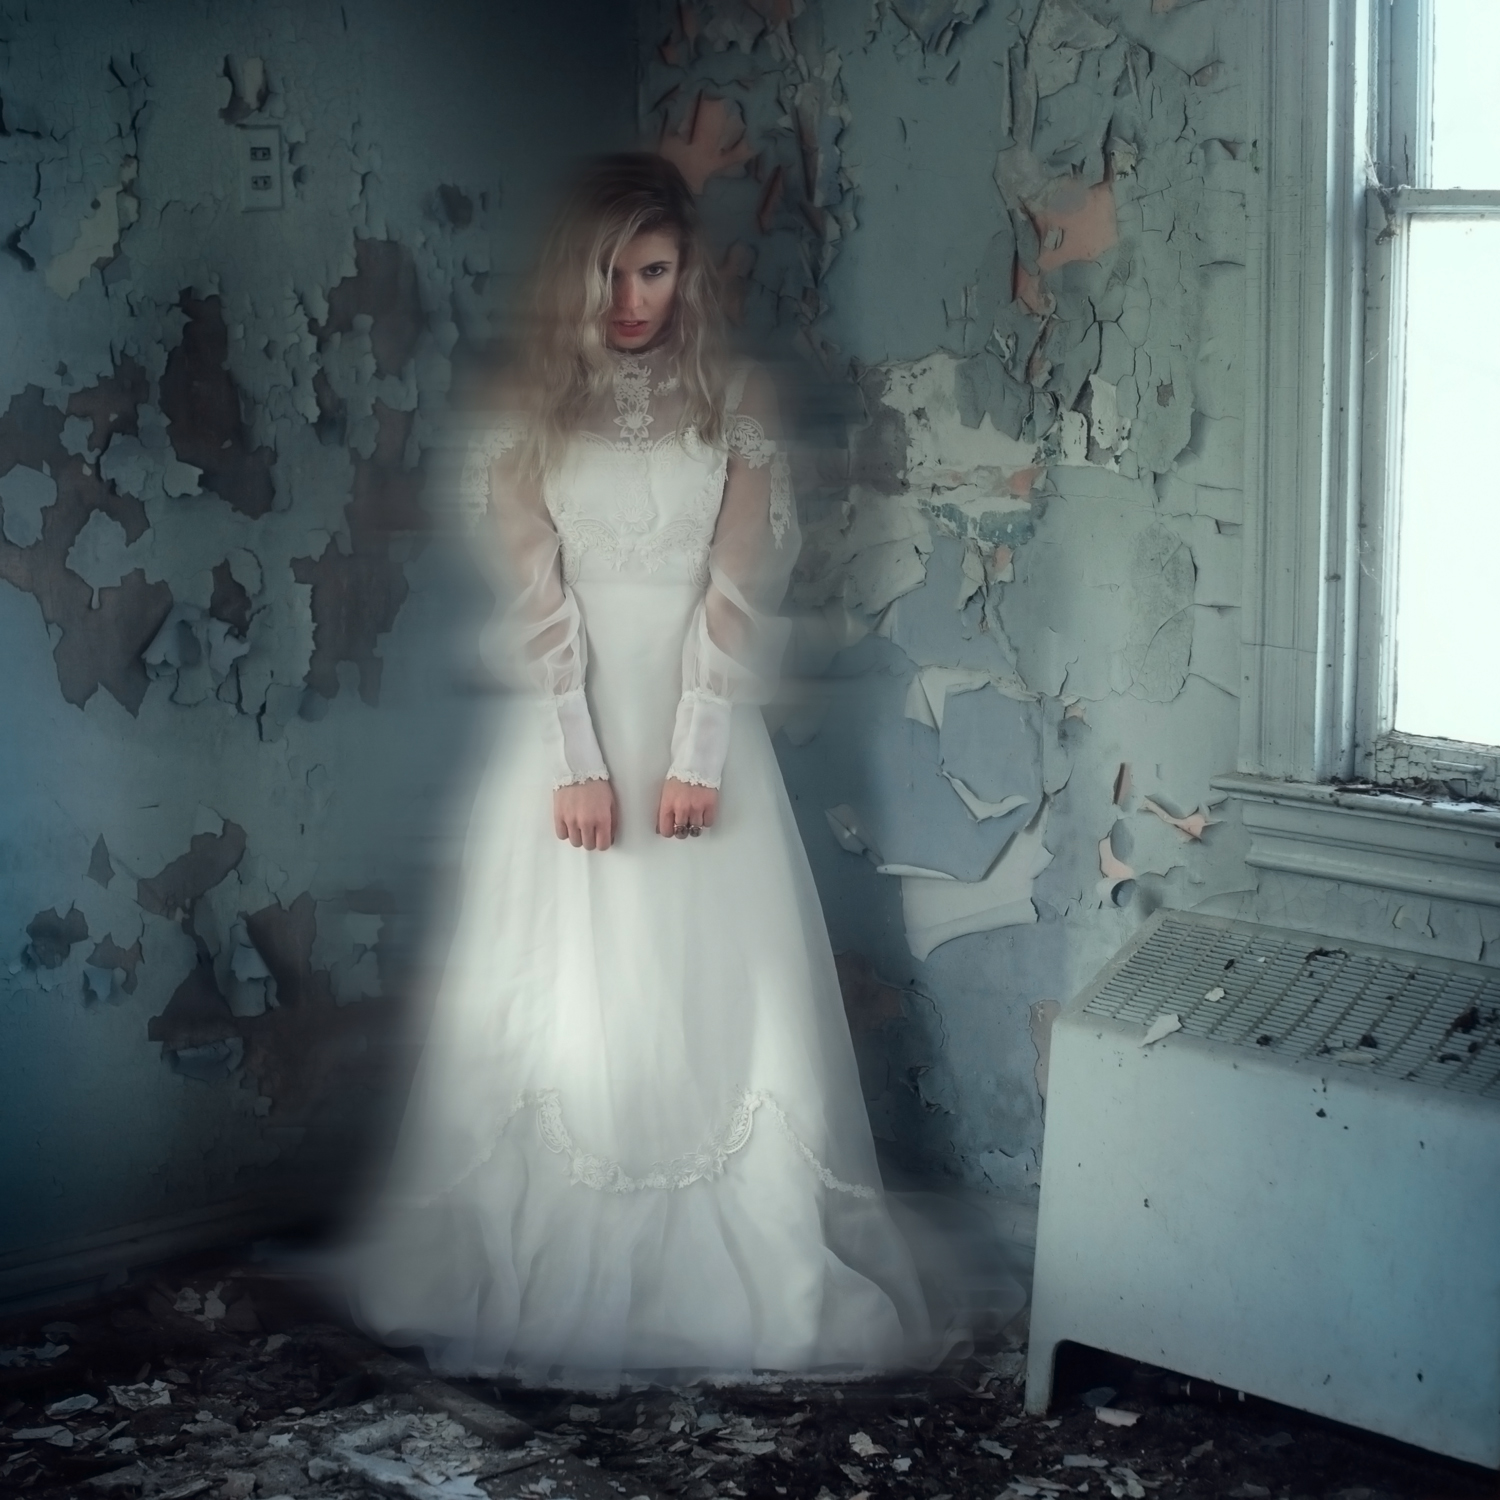 The Forgotten Bride - Ghostly Portraiture by Kelsie Taylor